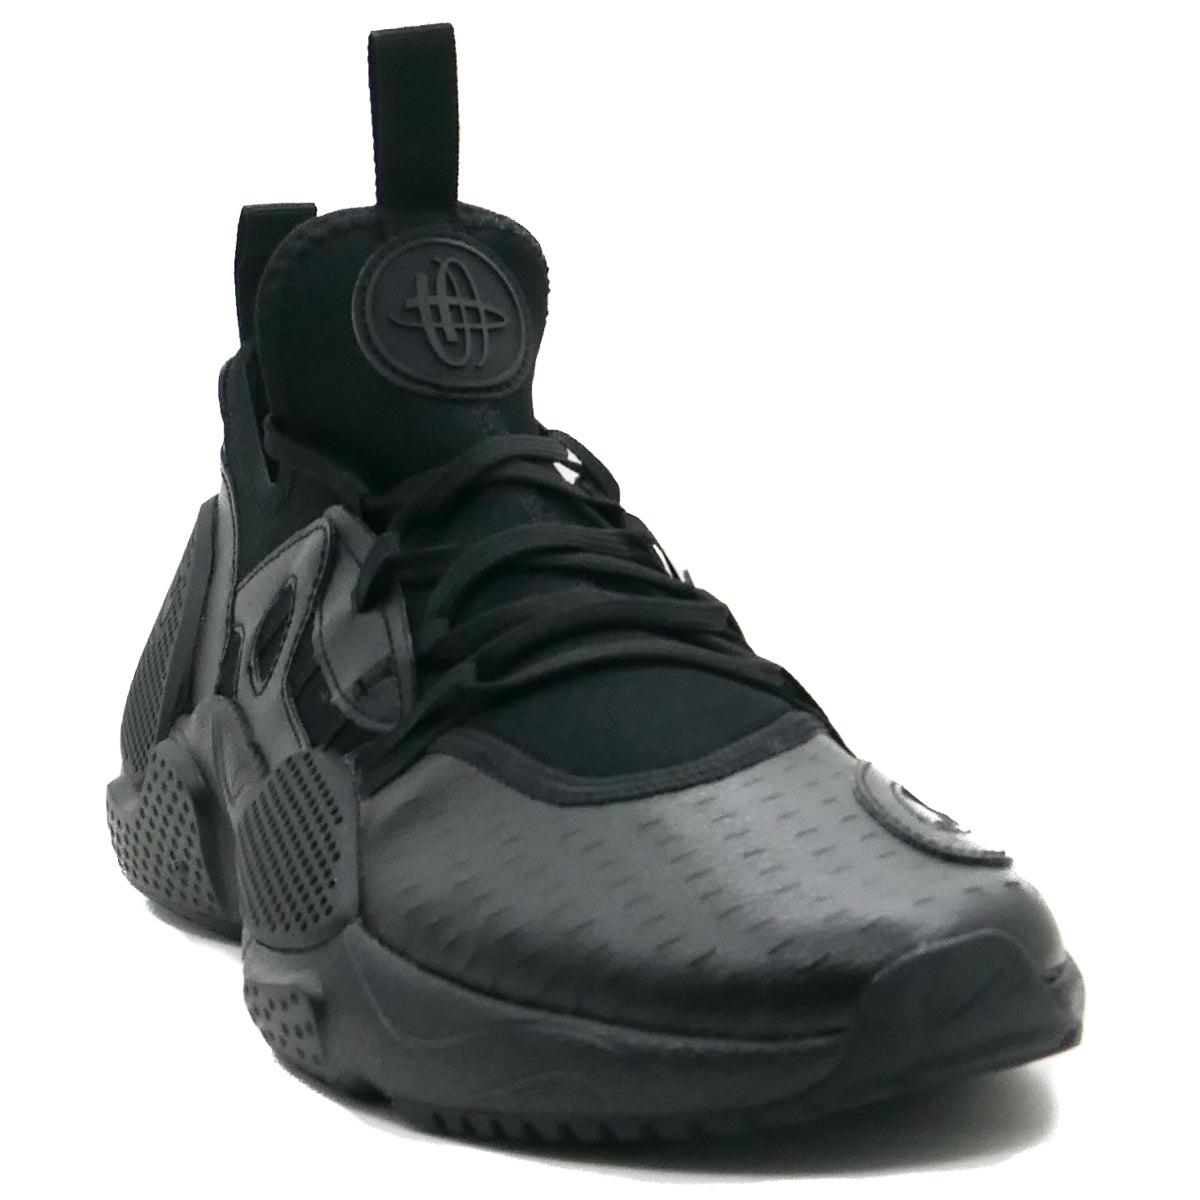 reputable site db94b 93a98 Nike Huarache E.D.G.E. Black